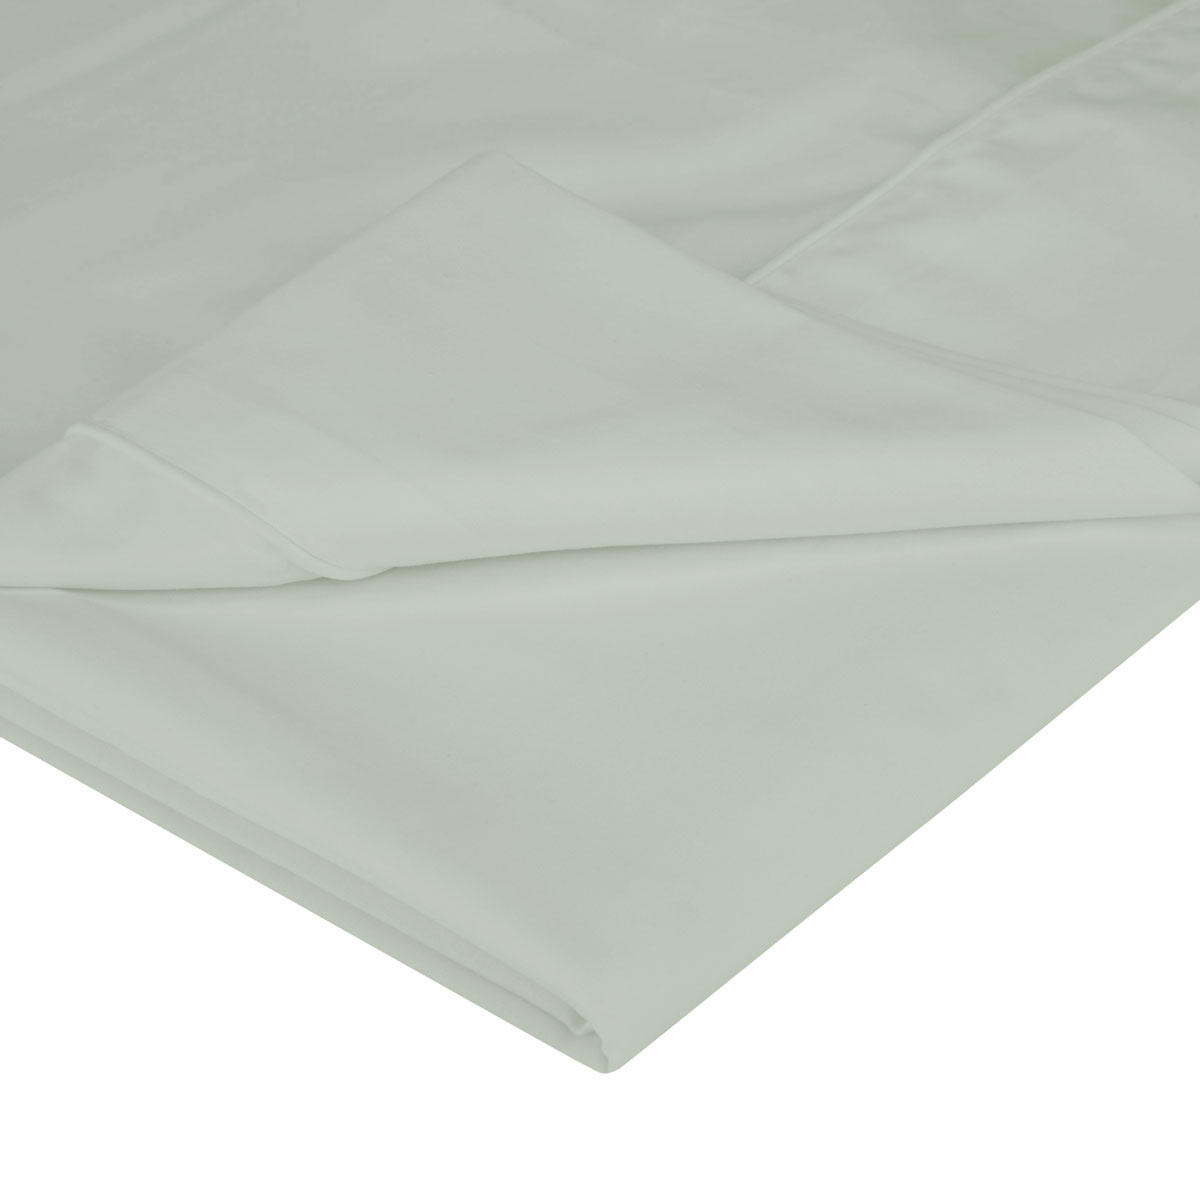 120840899: 400 Thread Count Flat Sheet Green